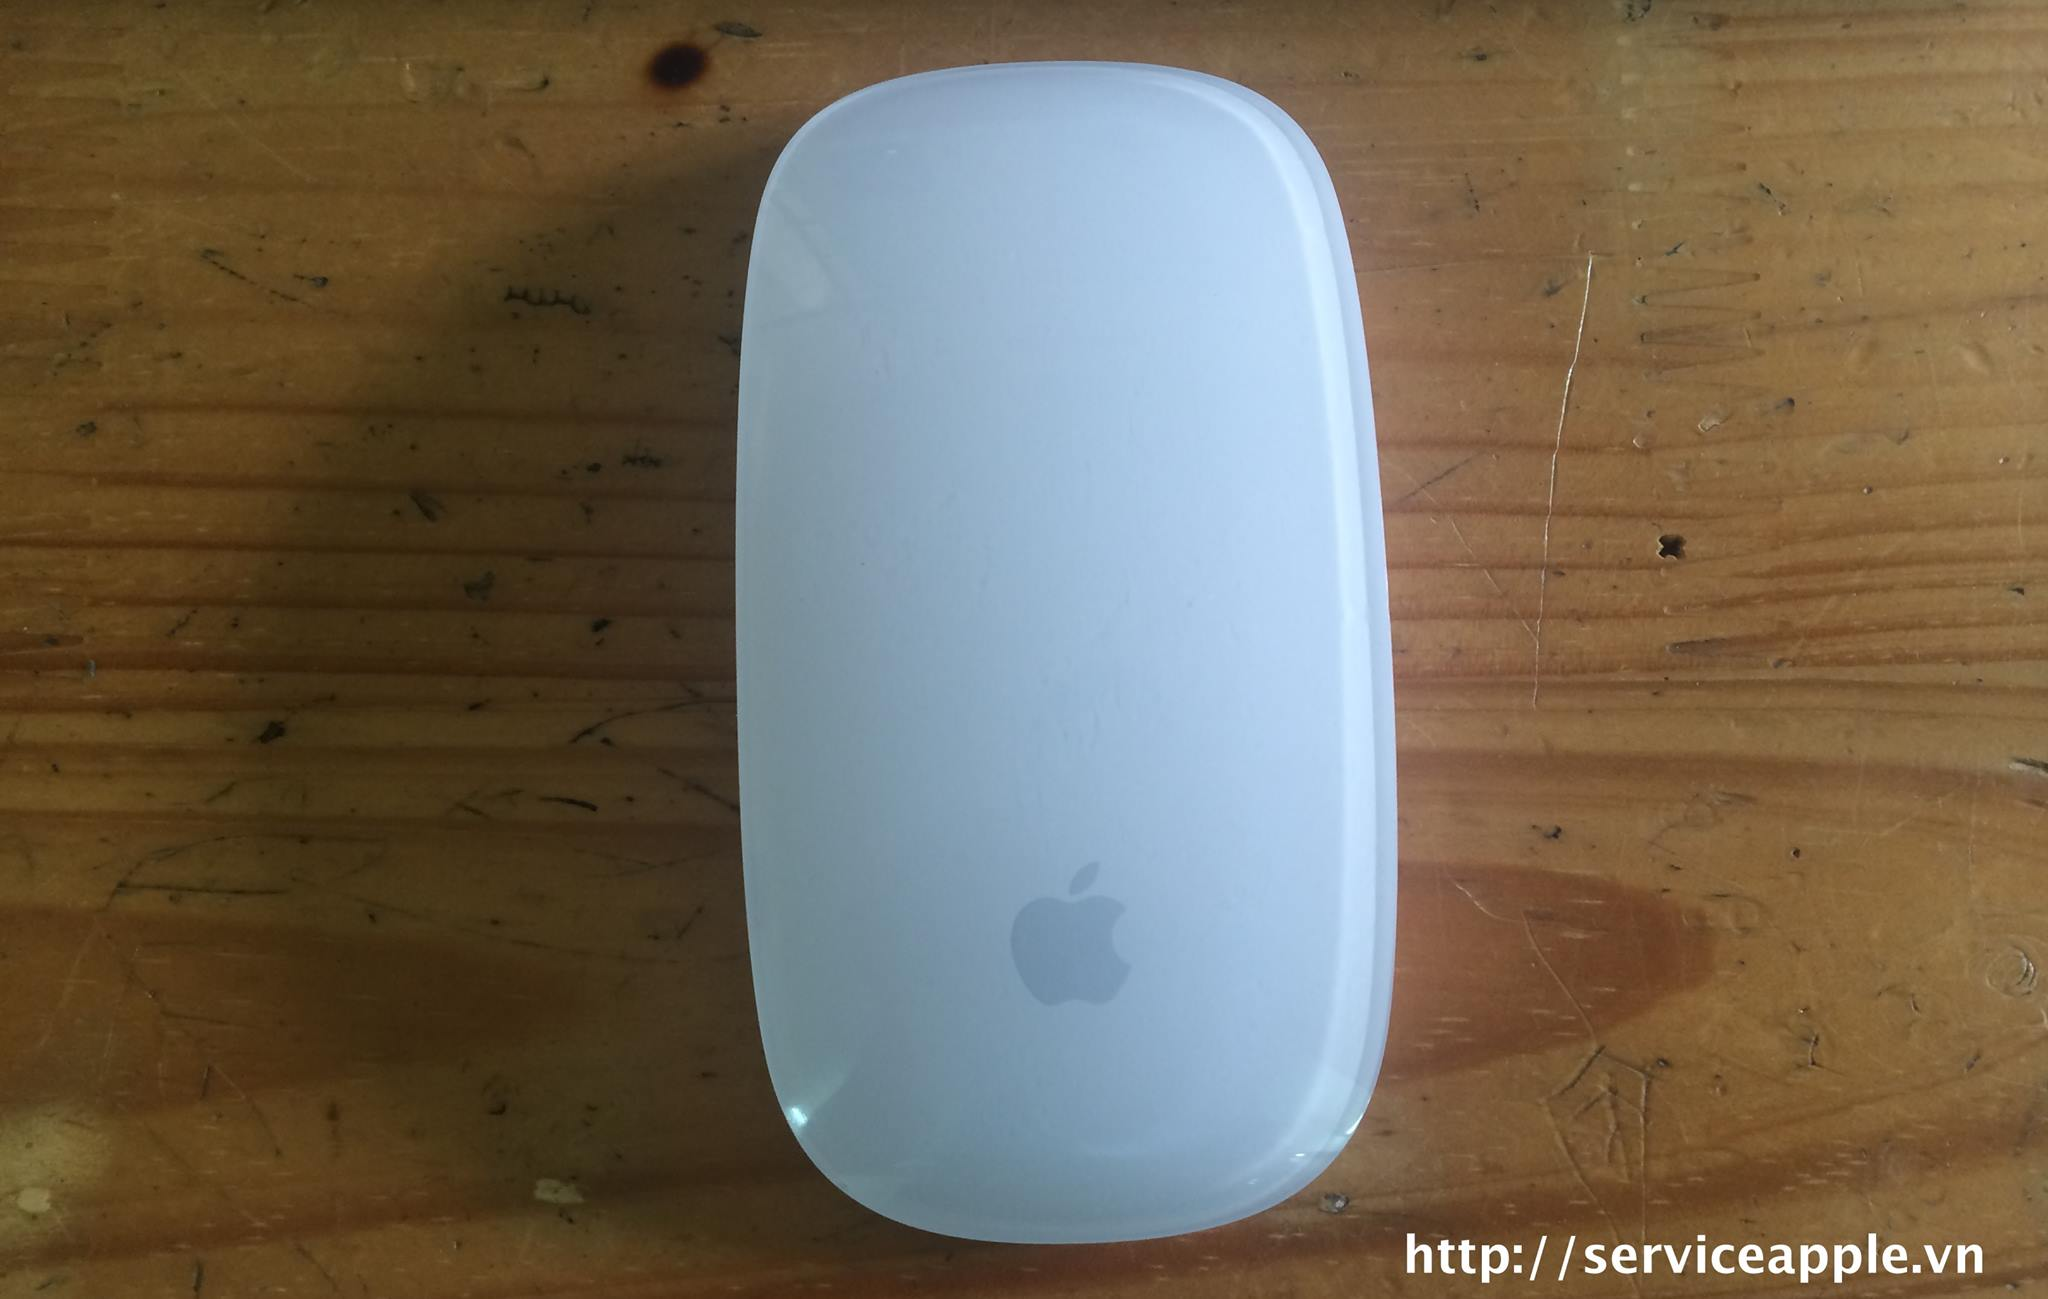 APPLE MAGIC MOUSE _1.jpg